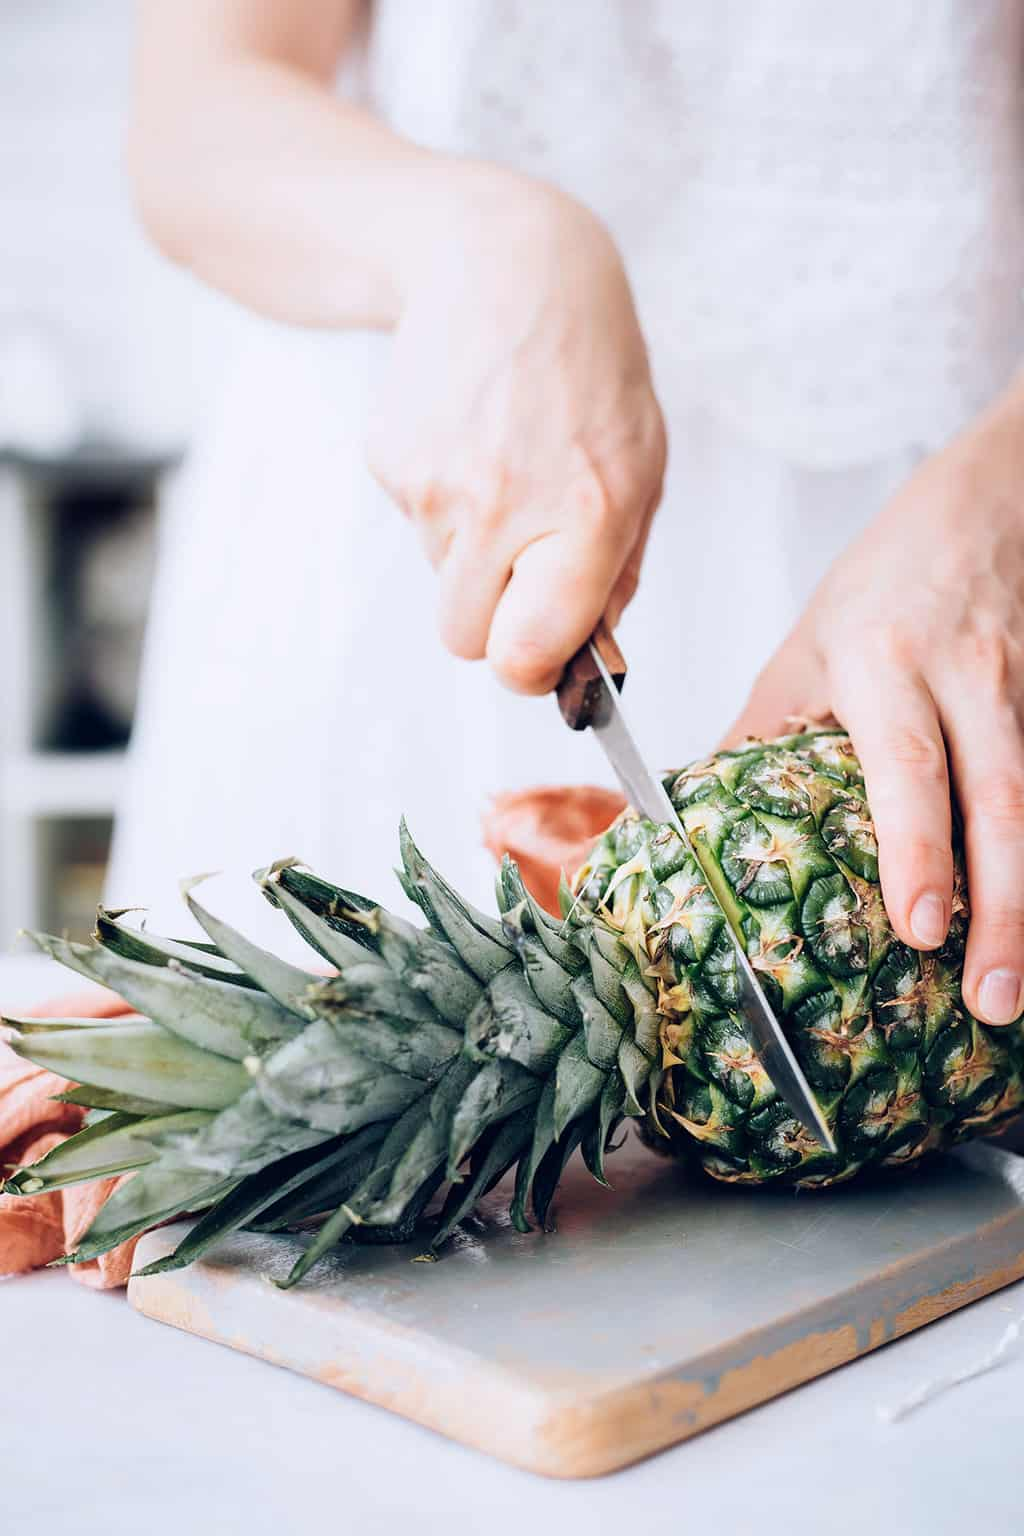 Cutting top off of a pineapple